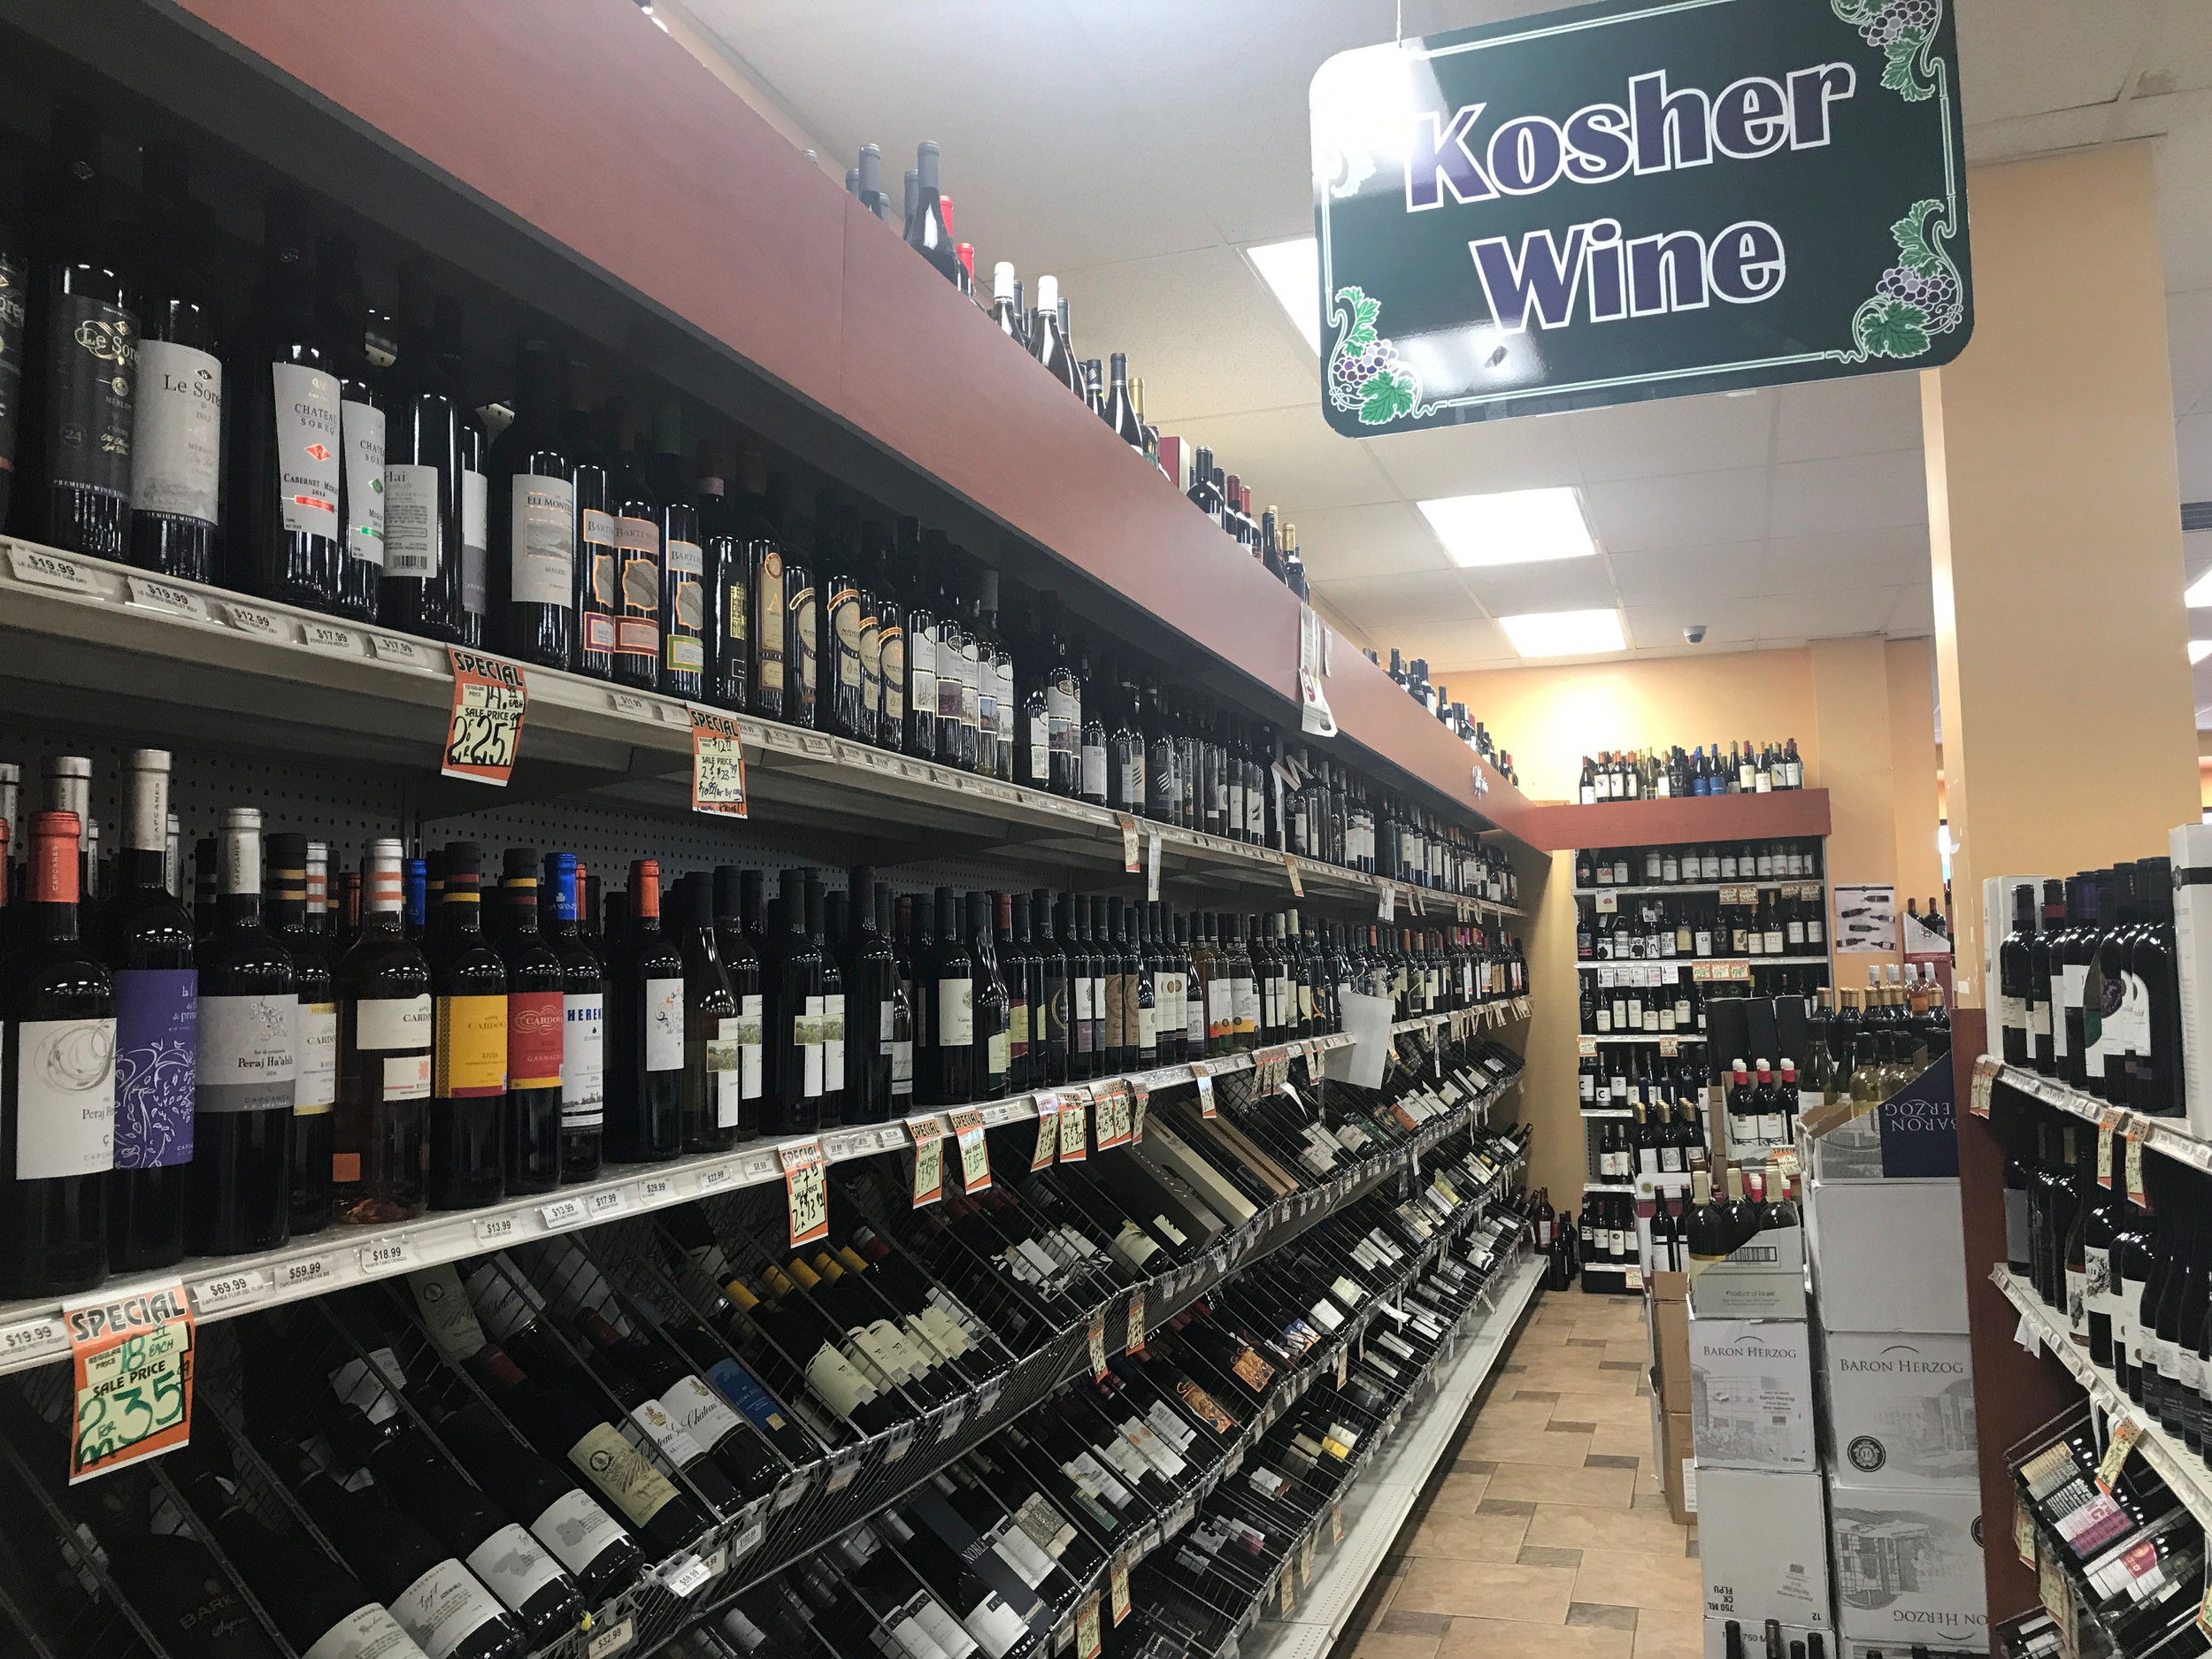 Liquor & Wine Warehouse in Lawrence has an extensive collection of kosher wines.